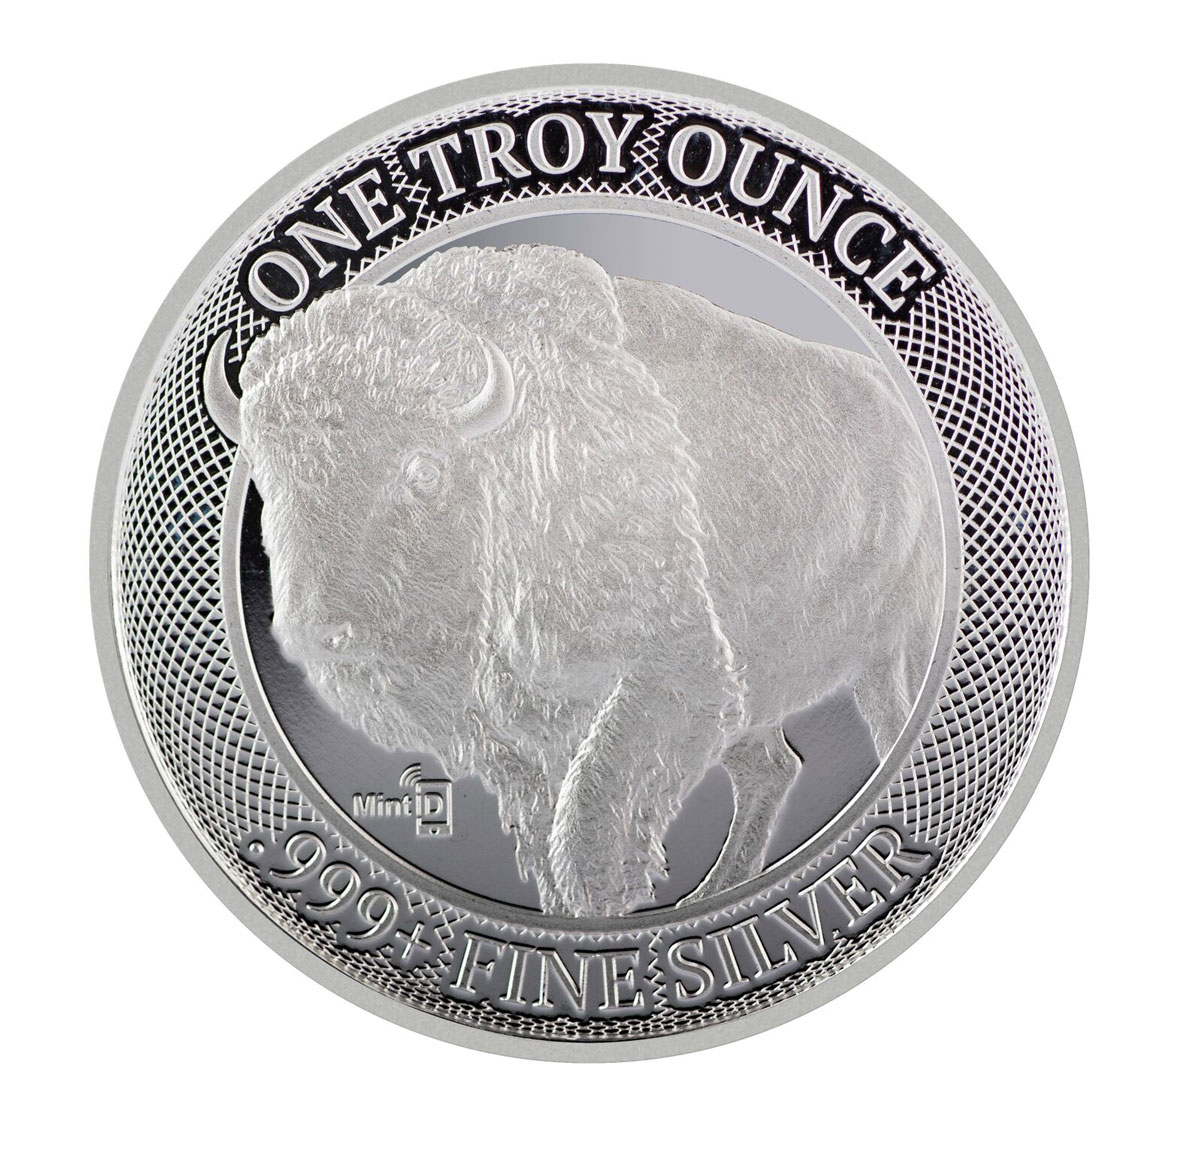 1 oz Silver MintID with AES-128 Bit Encrypted NFC Microchip Authentication Buffalo Round GEM BU